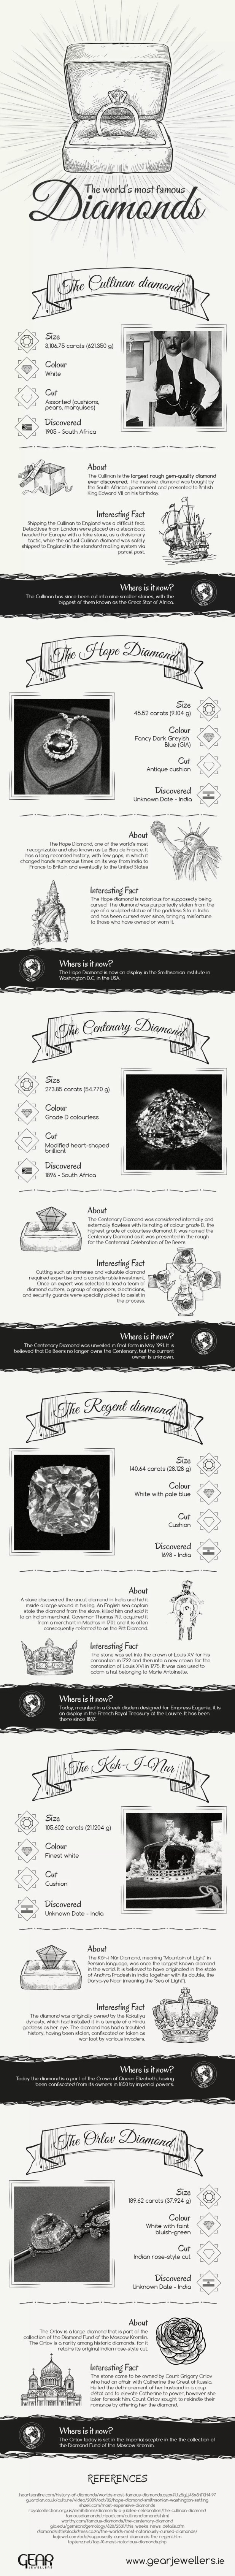 The-worlds-most-famous-diamonds-Infographic